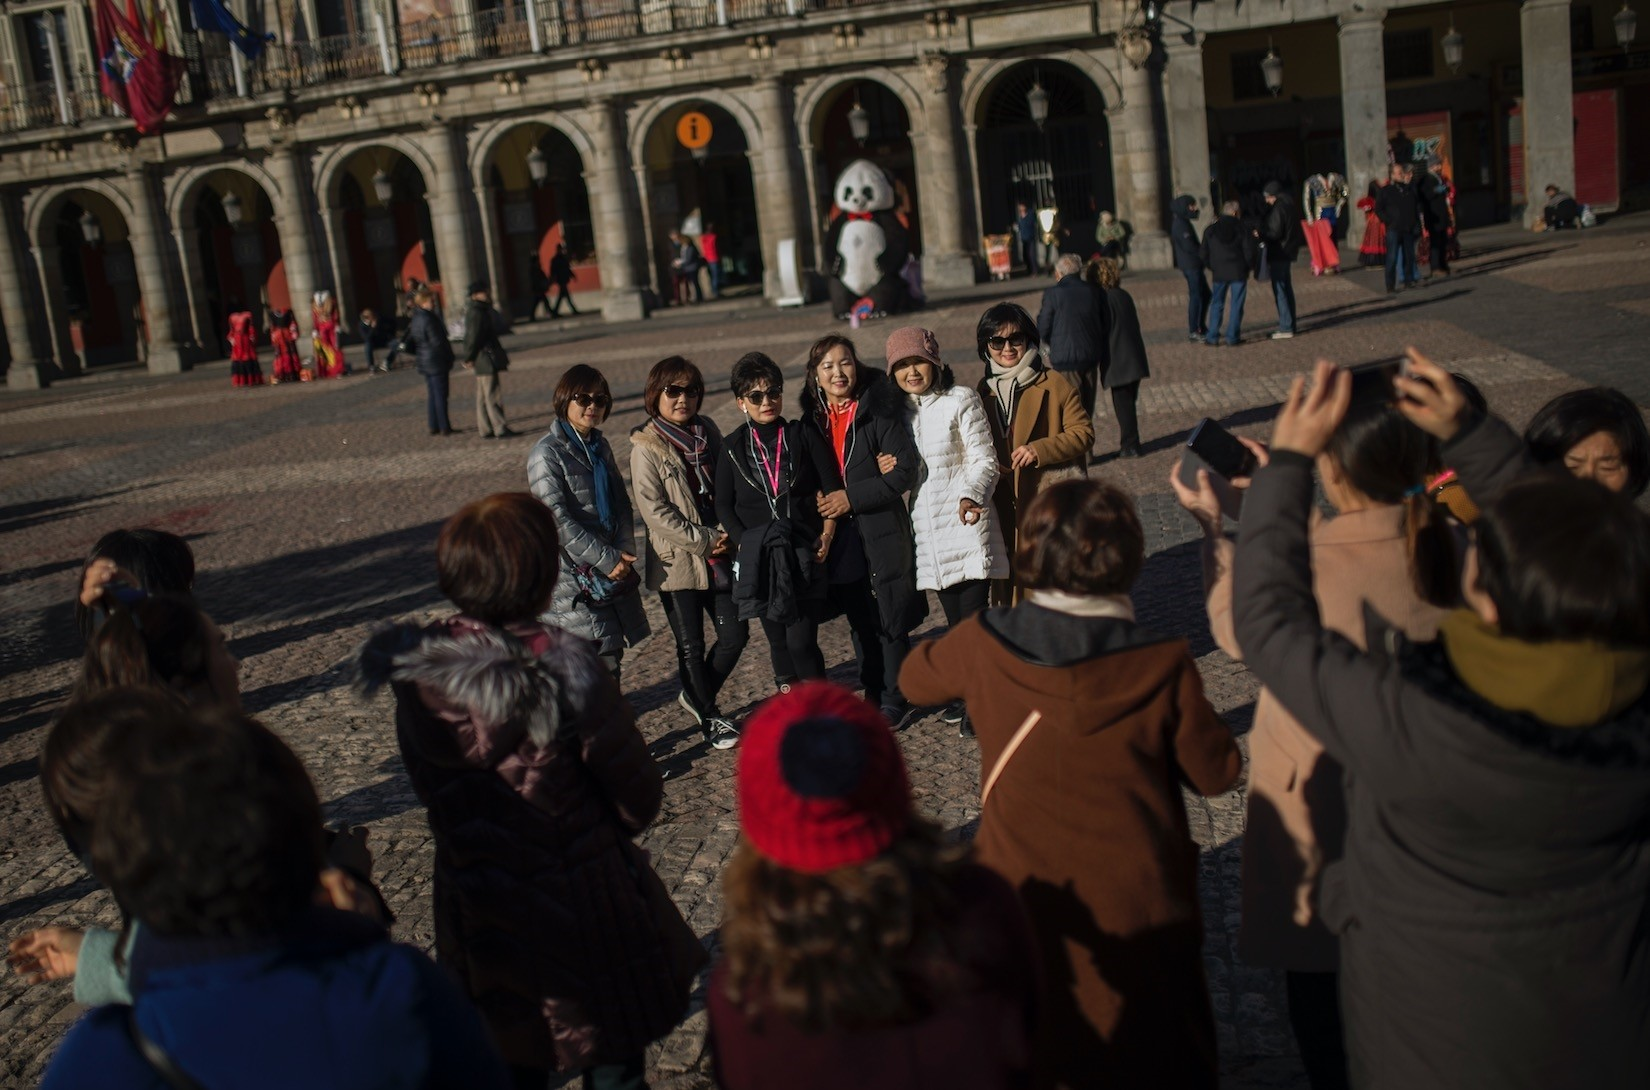 Tourists pose for a photograph at Mayor square in central Madrid. Spain says it has broken its record of international visitors for the fifth consecutive year in 2017 with 82 mn tourists that chose restive Catalonia as their main Spanish destination.